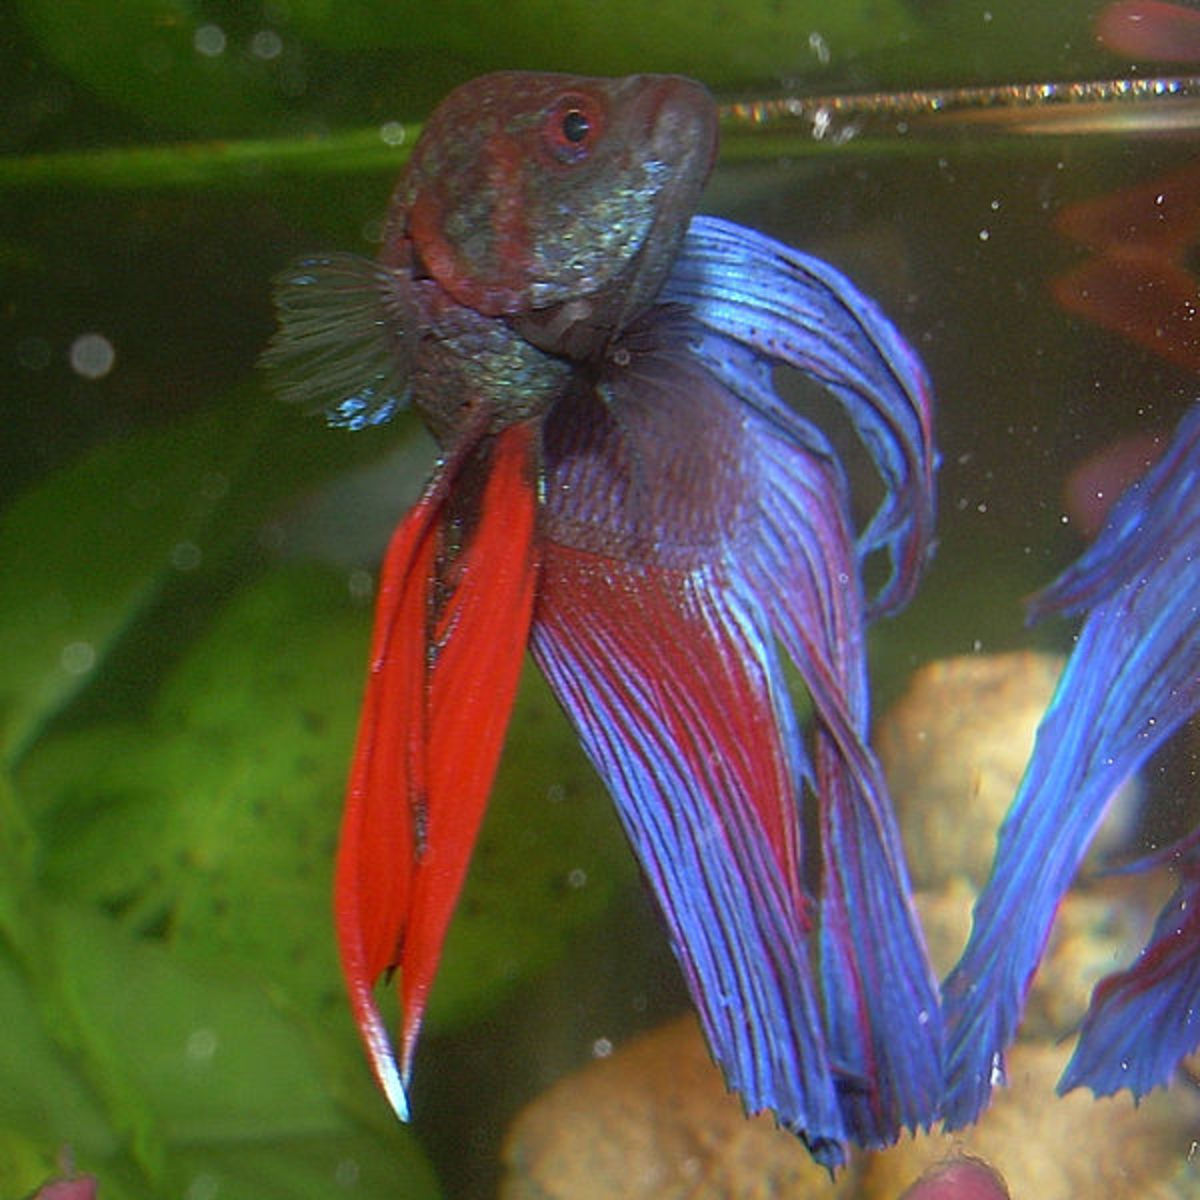 A Betta fish may be a better choice if you have limited space.